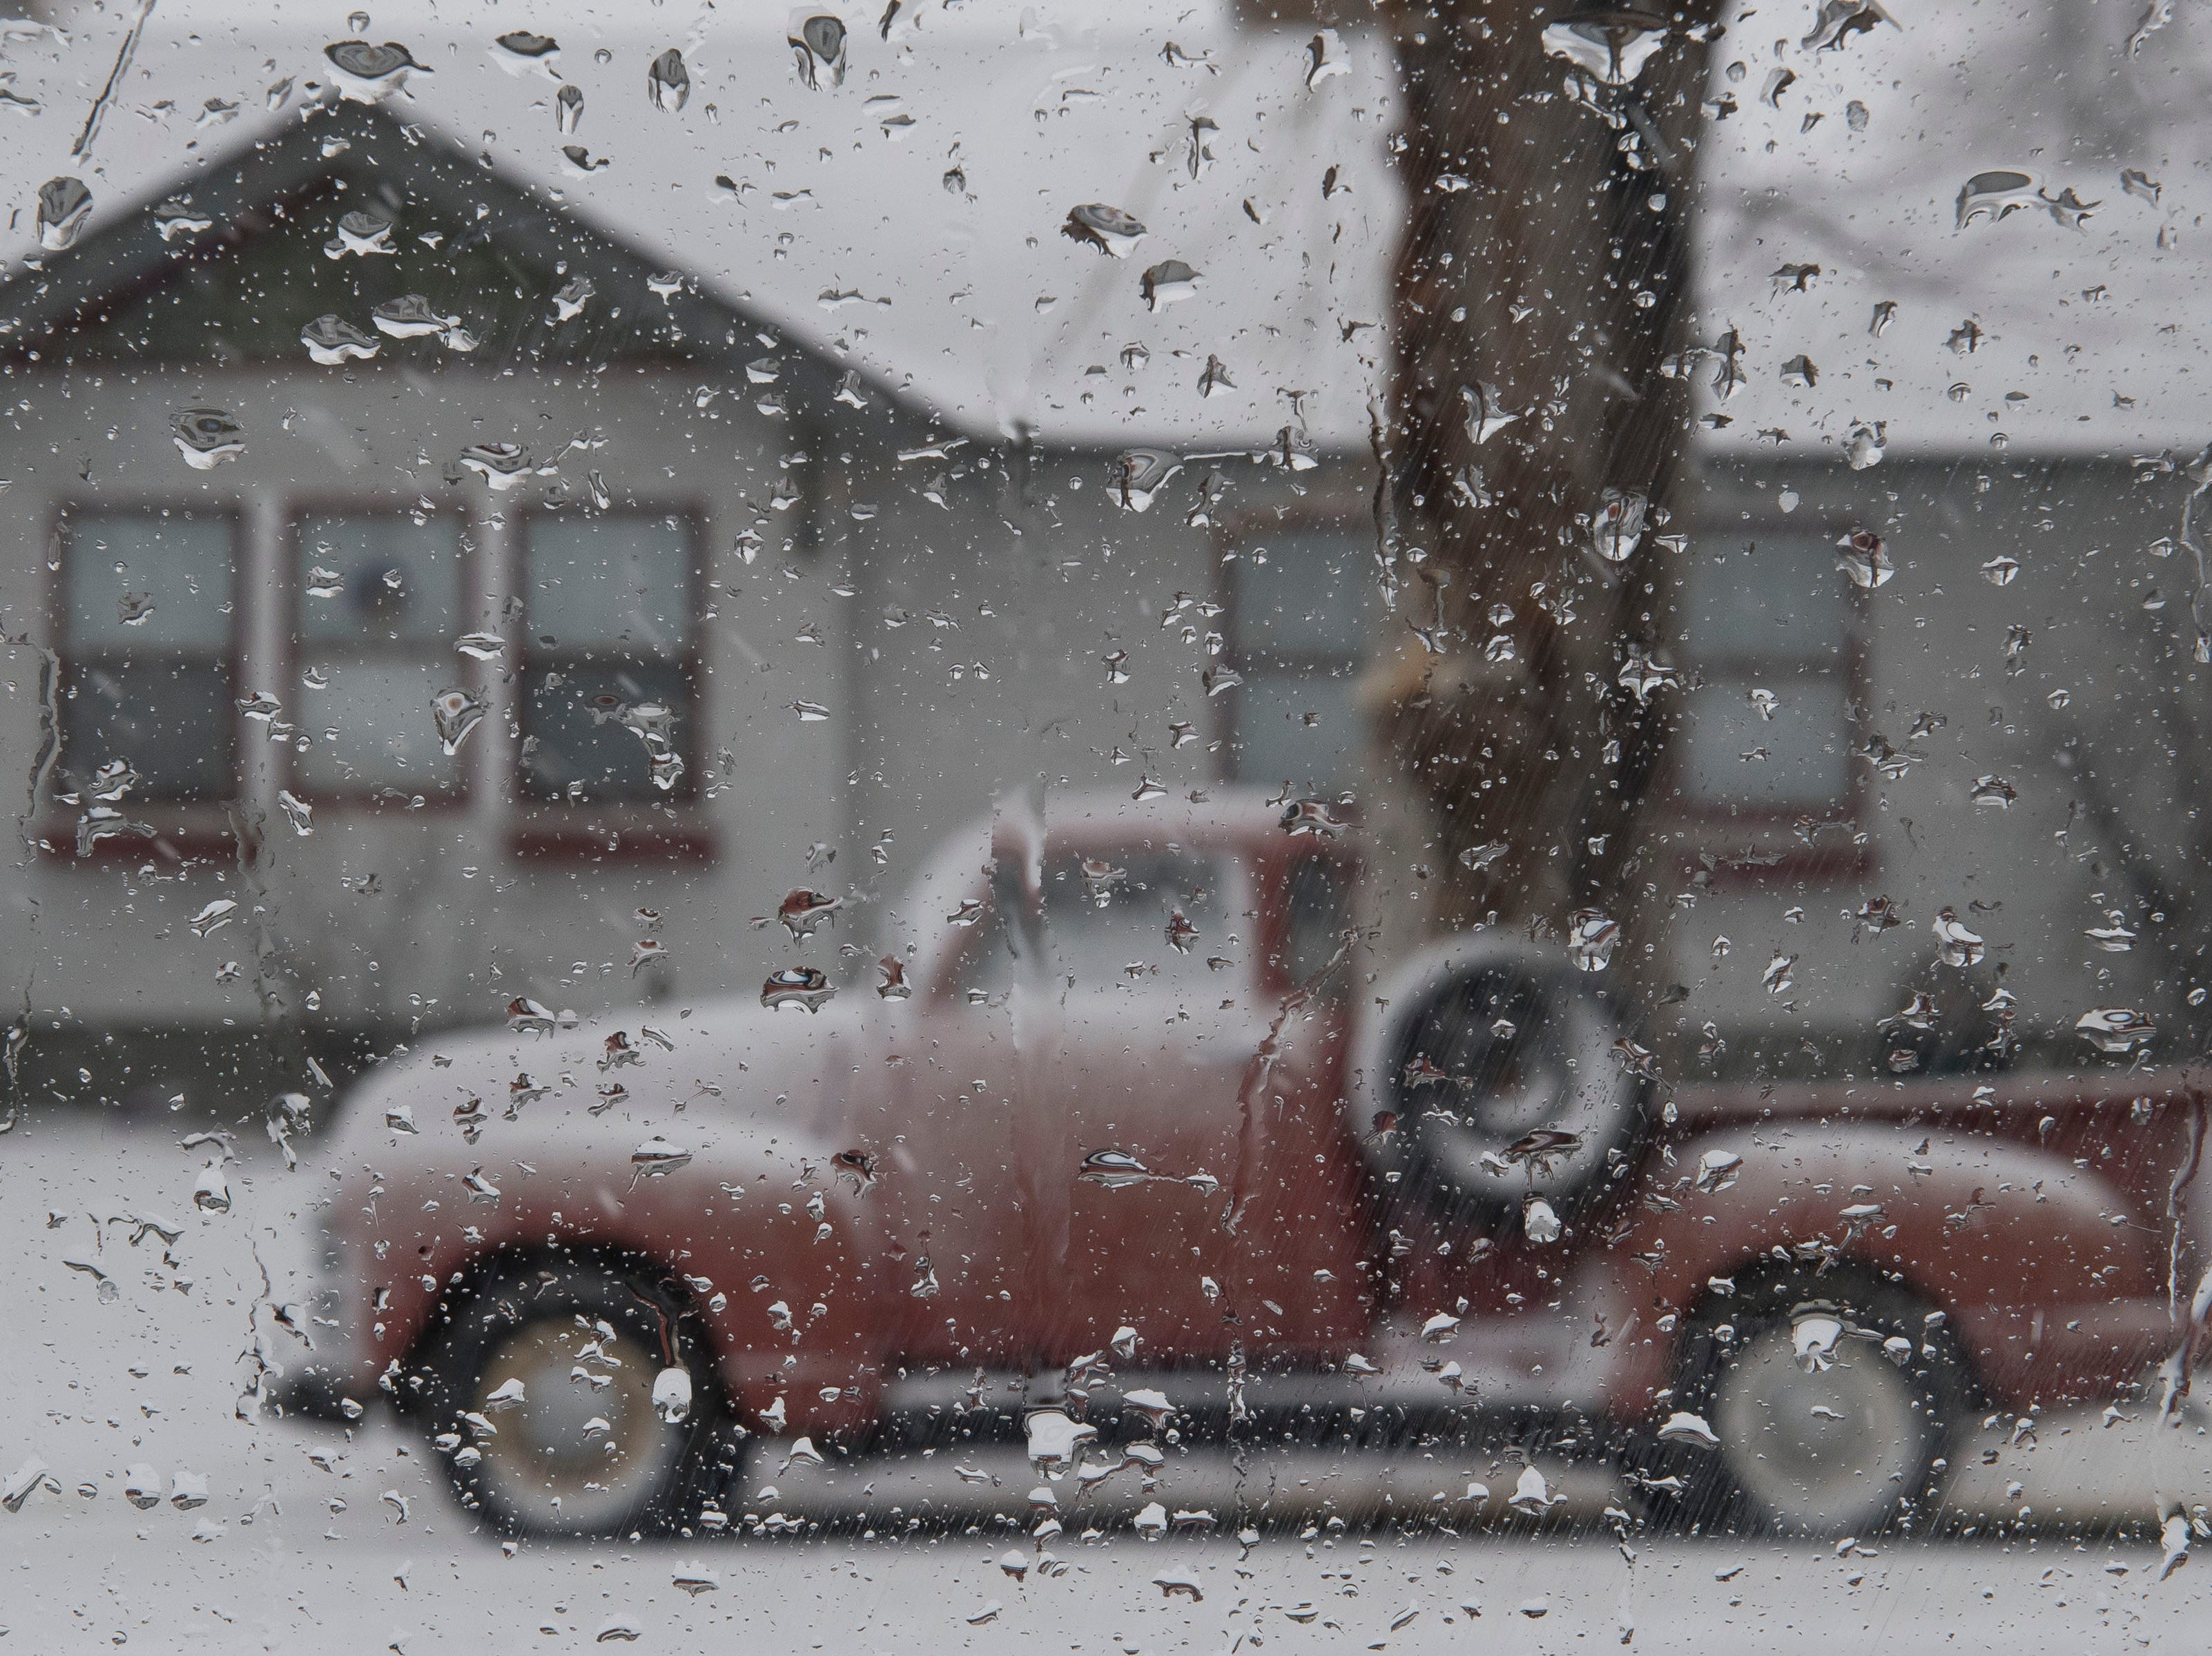 A classic truck collects snow on Wednesday, March 13, 2019, in Fort Collins, Colo.